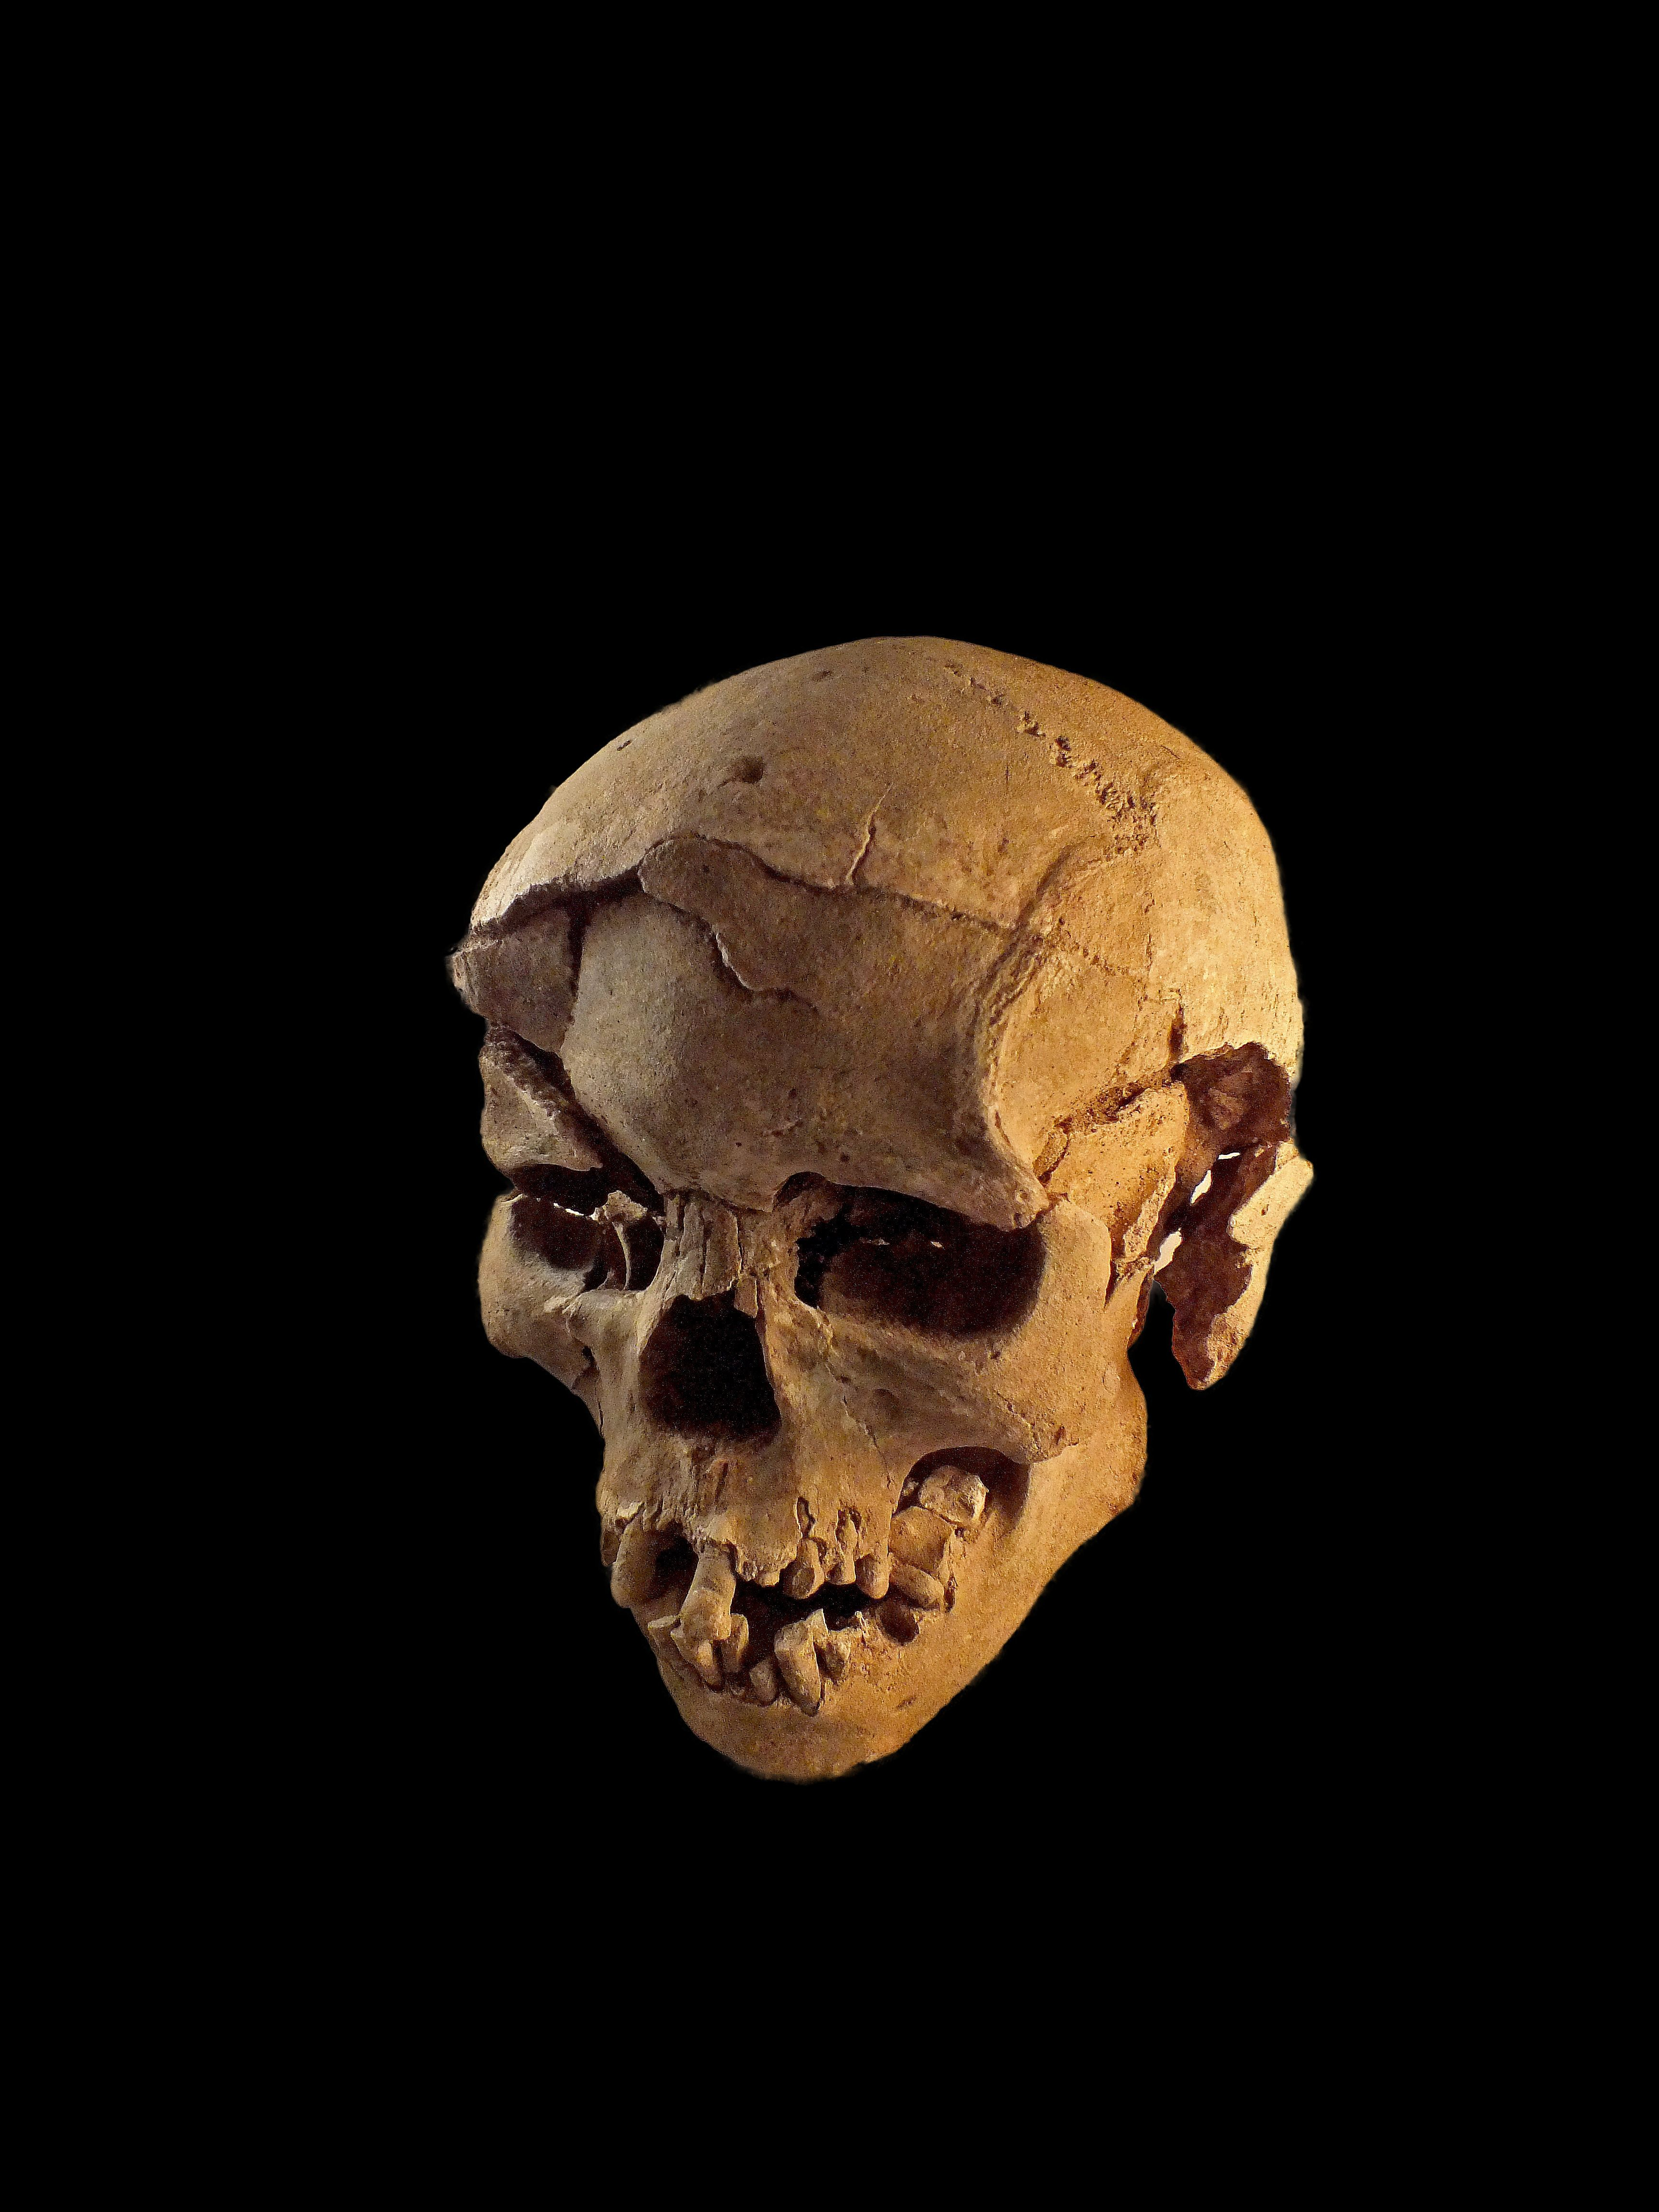 A skull with multiple fracture wounds, likely made by a blunt instrument such as a club.